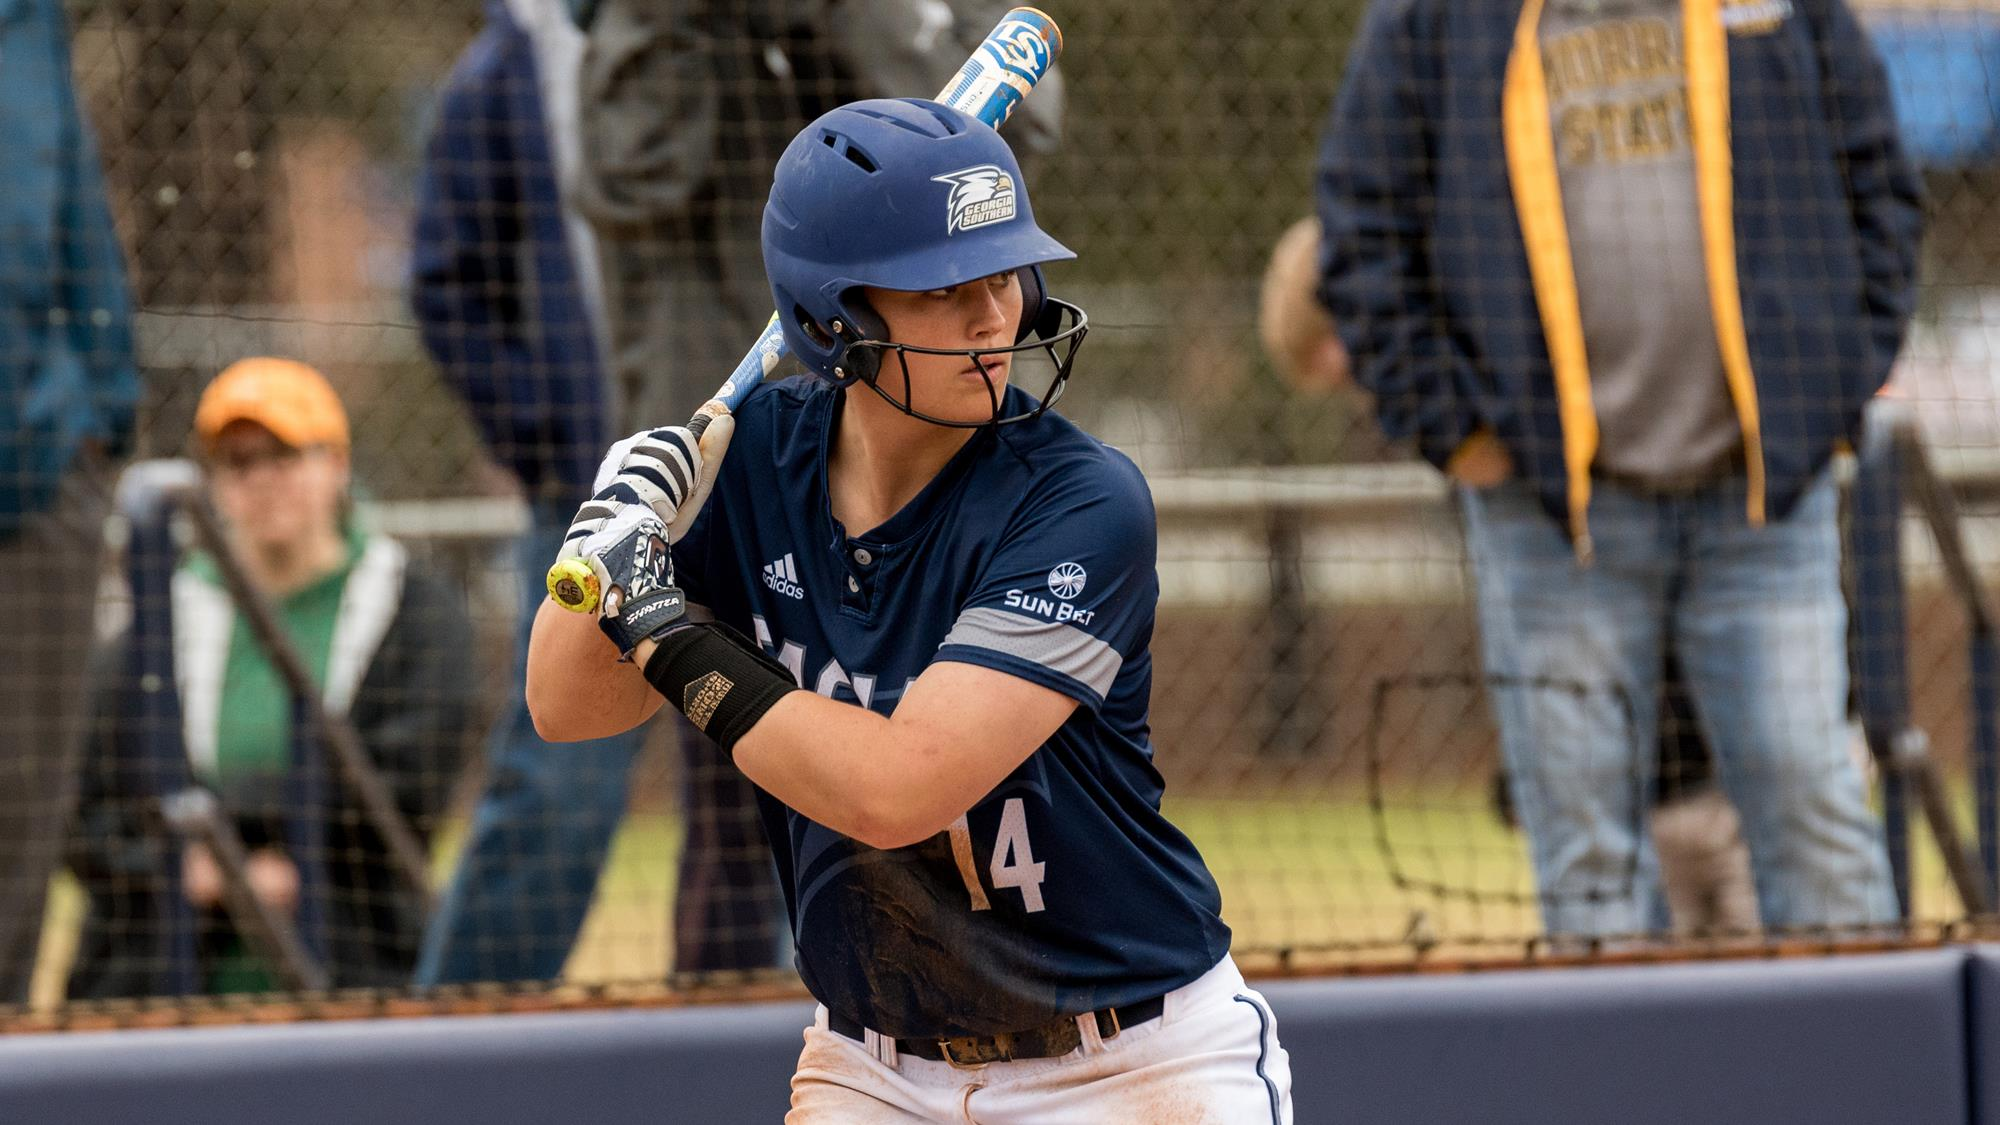 PREVIEW: GS Softball Travels To Texas State For Key Sun Belt Series